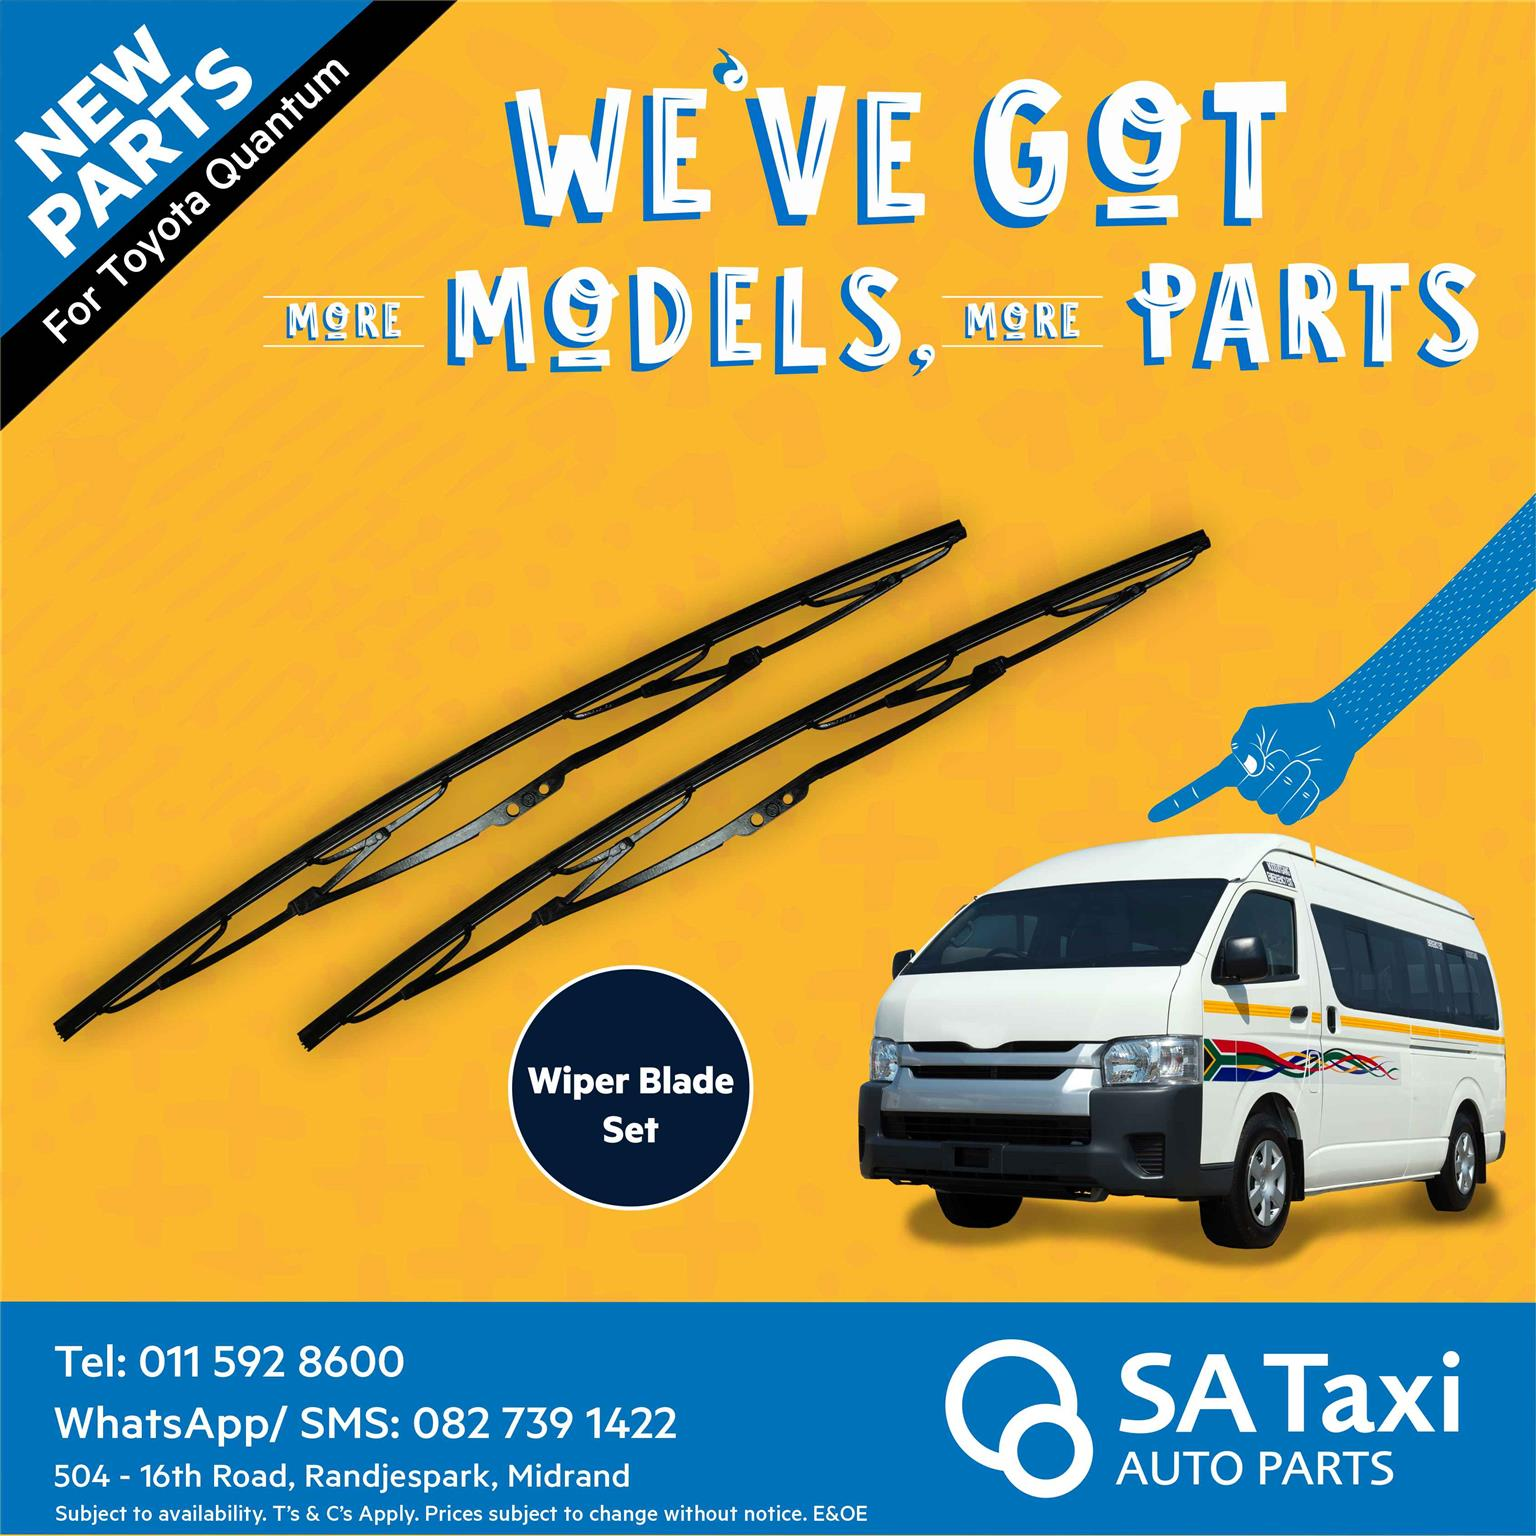 New Wiper Blade set suitable for Toyota Quantum - SA Taxi Auto Parts quality spares